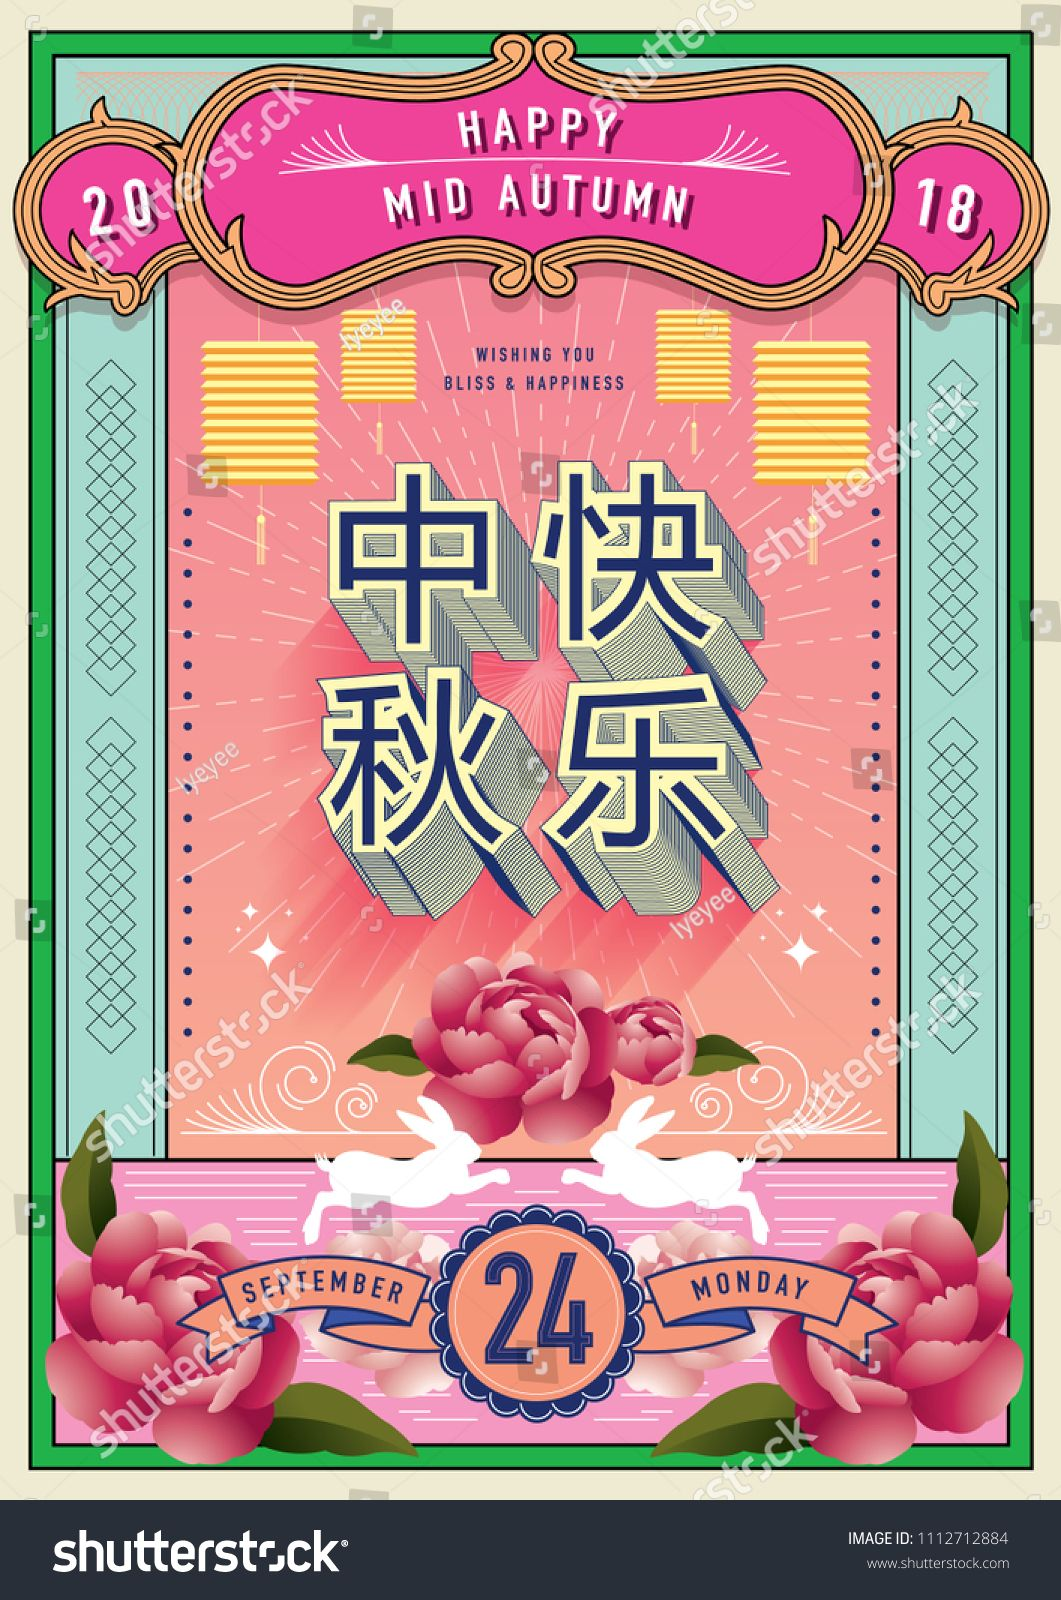 Vintageretro Mid Autumn Festival Mooncake Festival Greetings